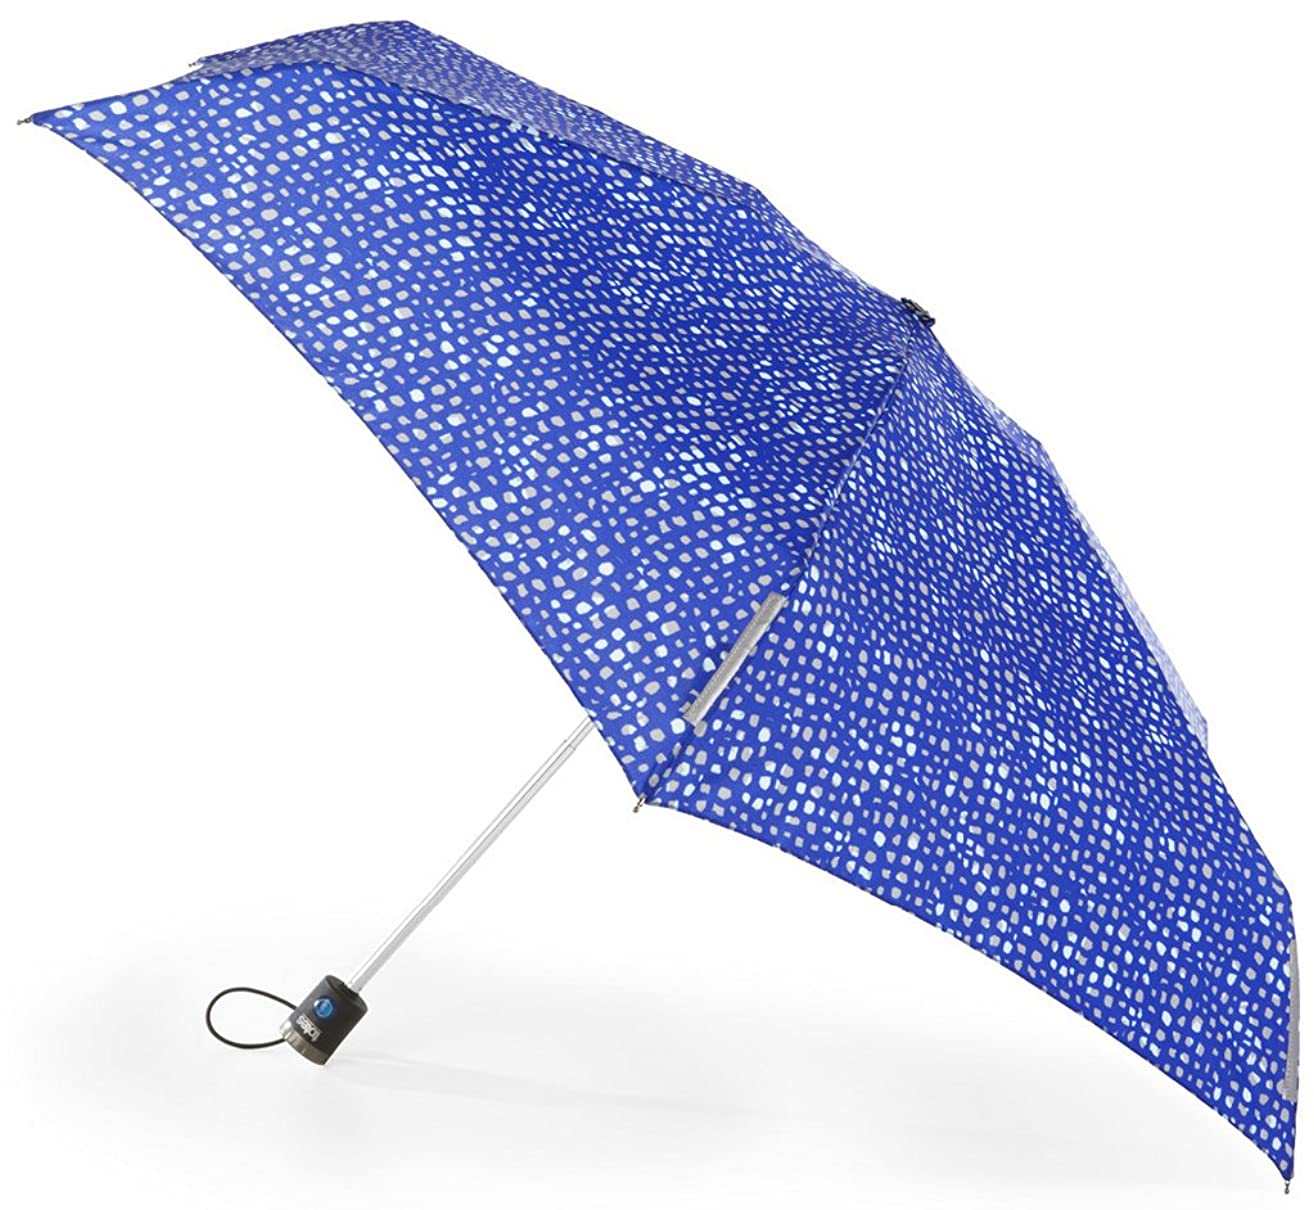 Totes TRX Manual Light-N-Go Trekker Umbrella By Totes (One size, Outdoor Net)